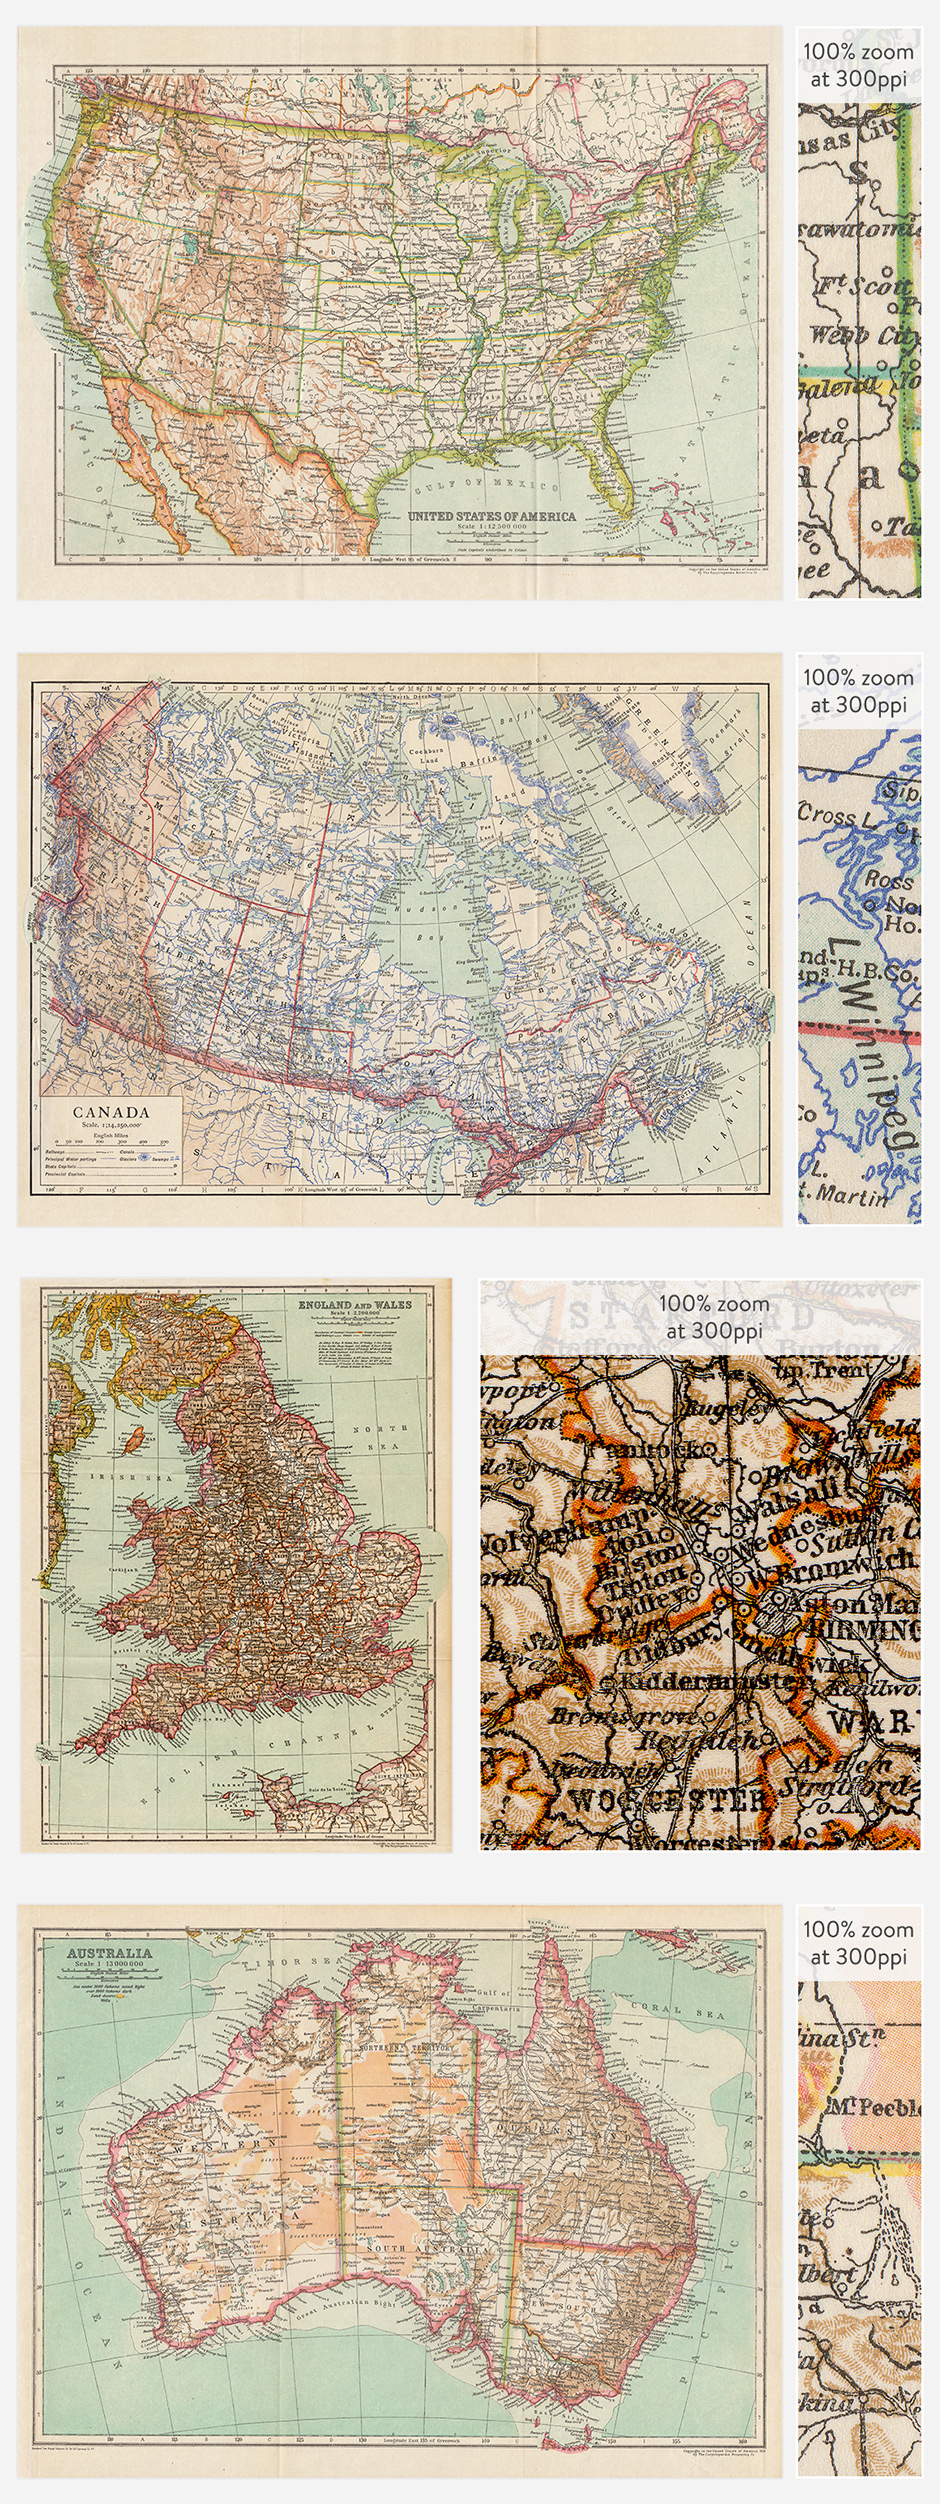 Antique Maps Vol. 2